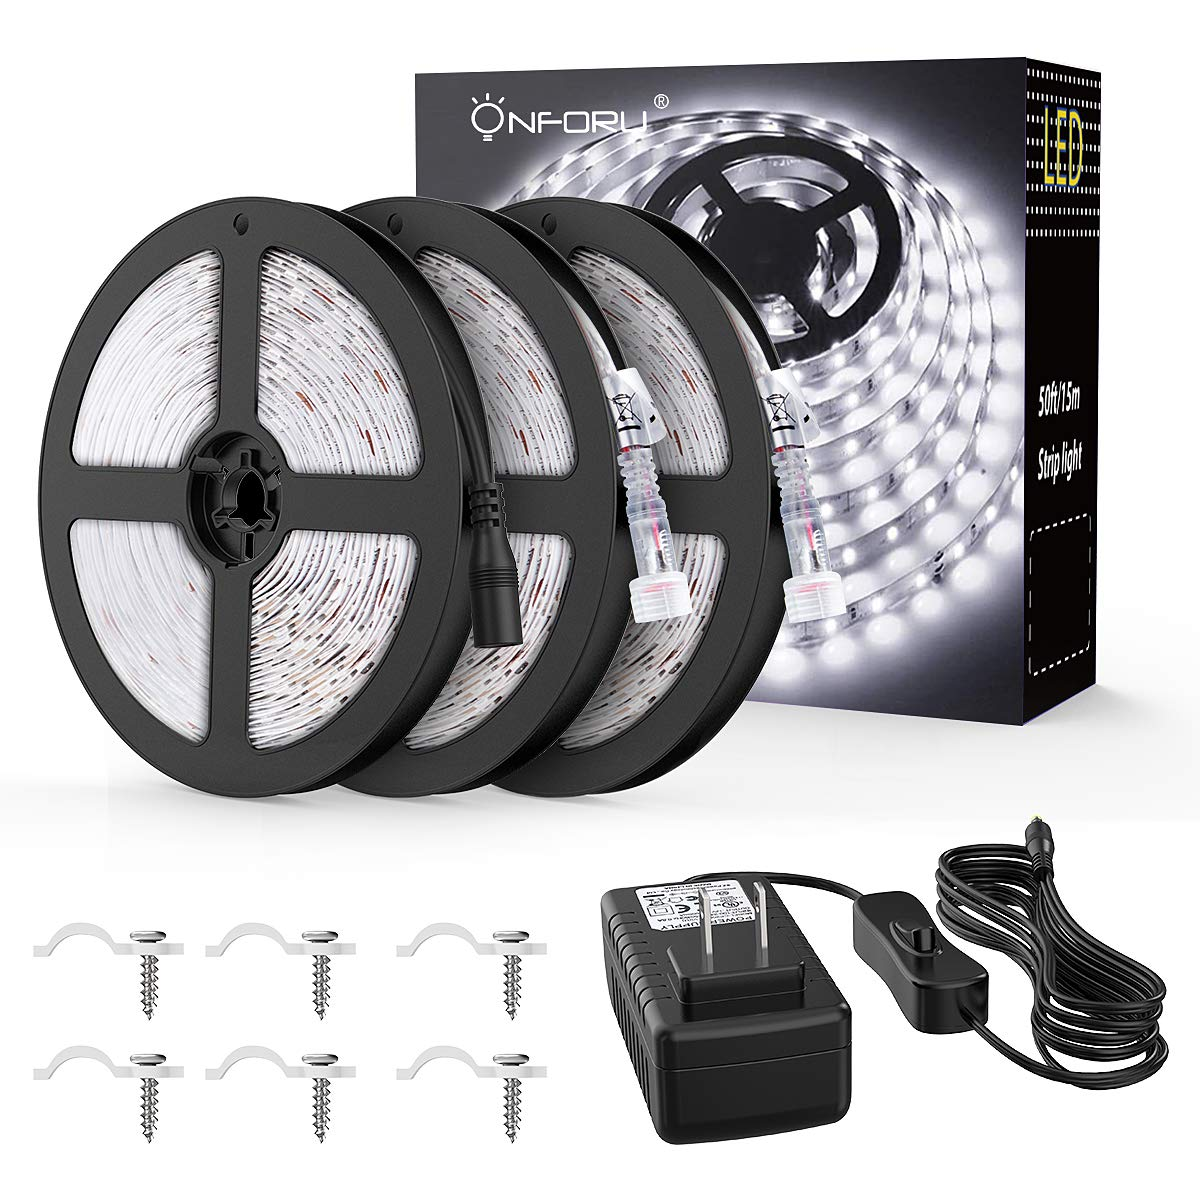 Onforu 50ft/15m Waterproof LED Strip Lights Kit, 6000K Cool White, 12V Flexible LED Rope with 450 SMD 2835 LEDs, UL Listed Power Supply with Switch, IP65 Waterproof for Indoors and Outdoors